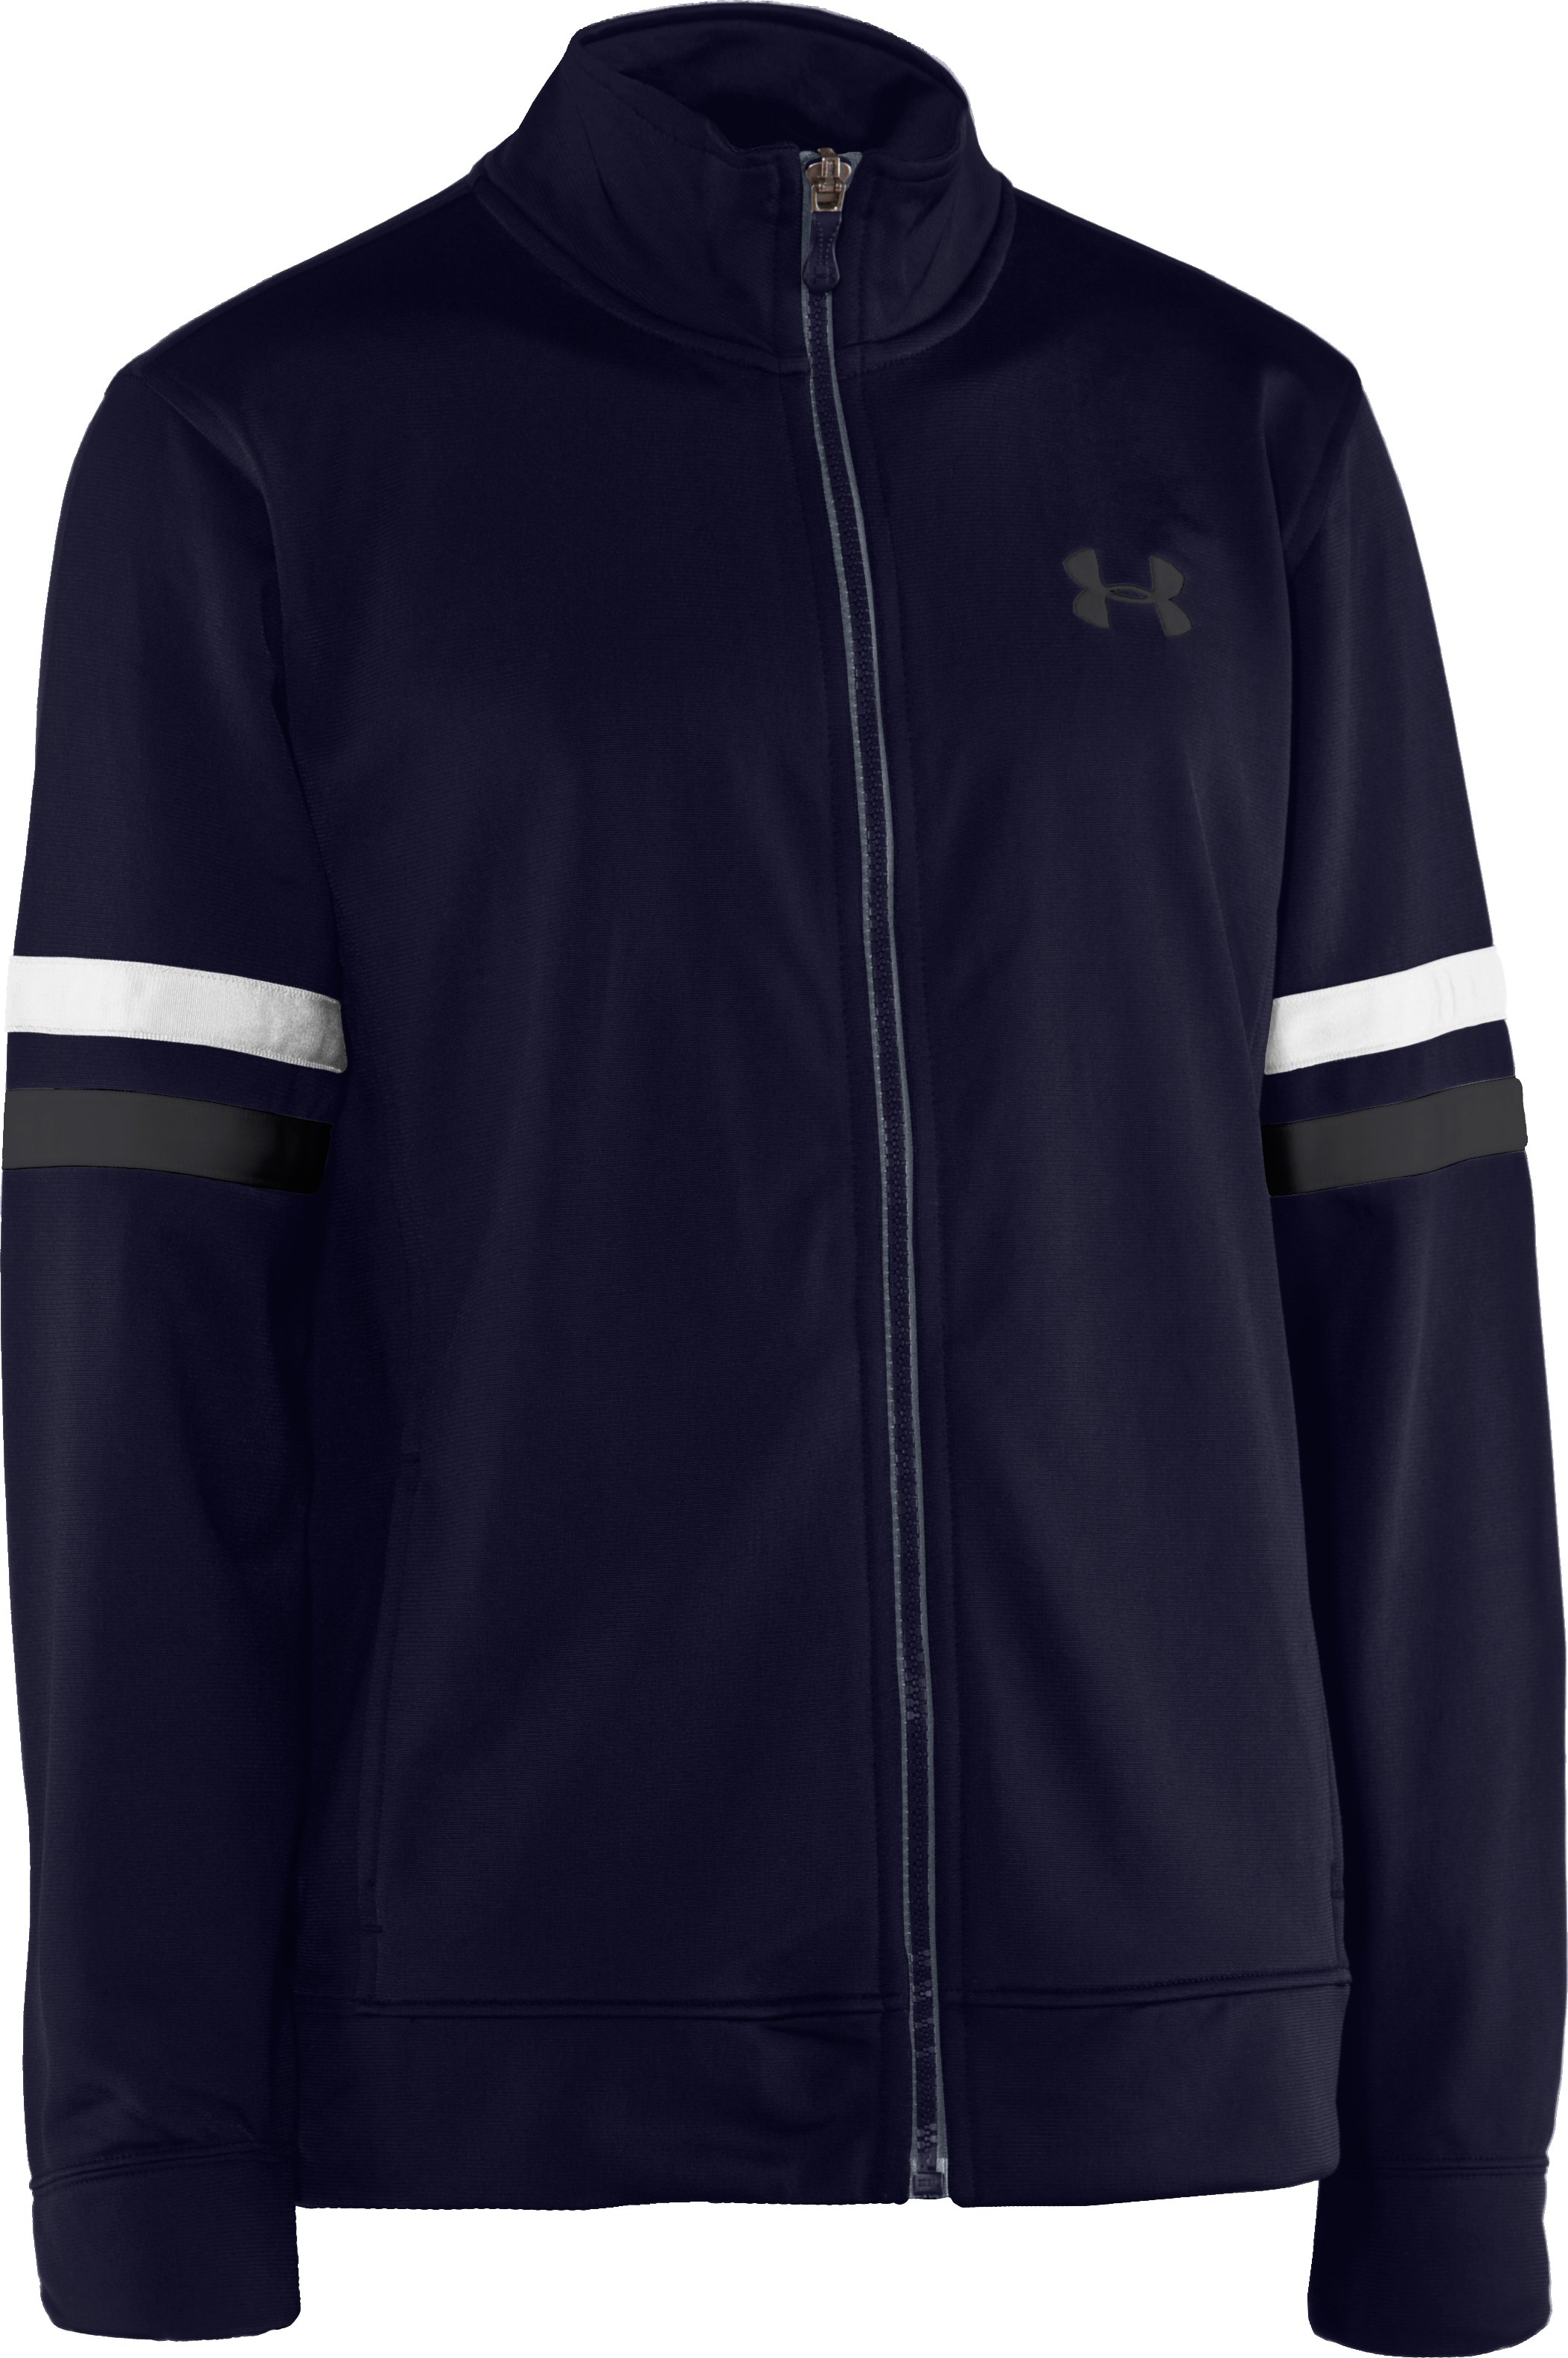 Boys' UA Brawler Warm-Up Jacket, Midnight Navy, zoomed image